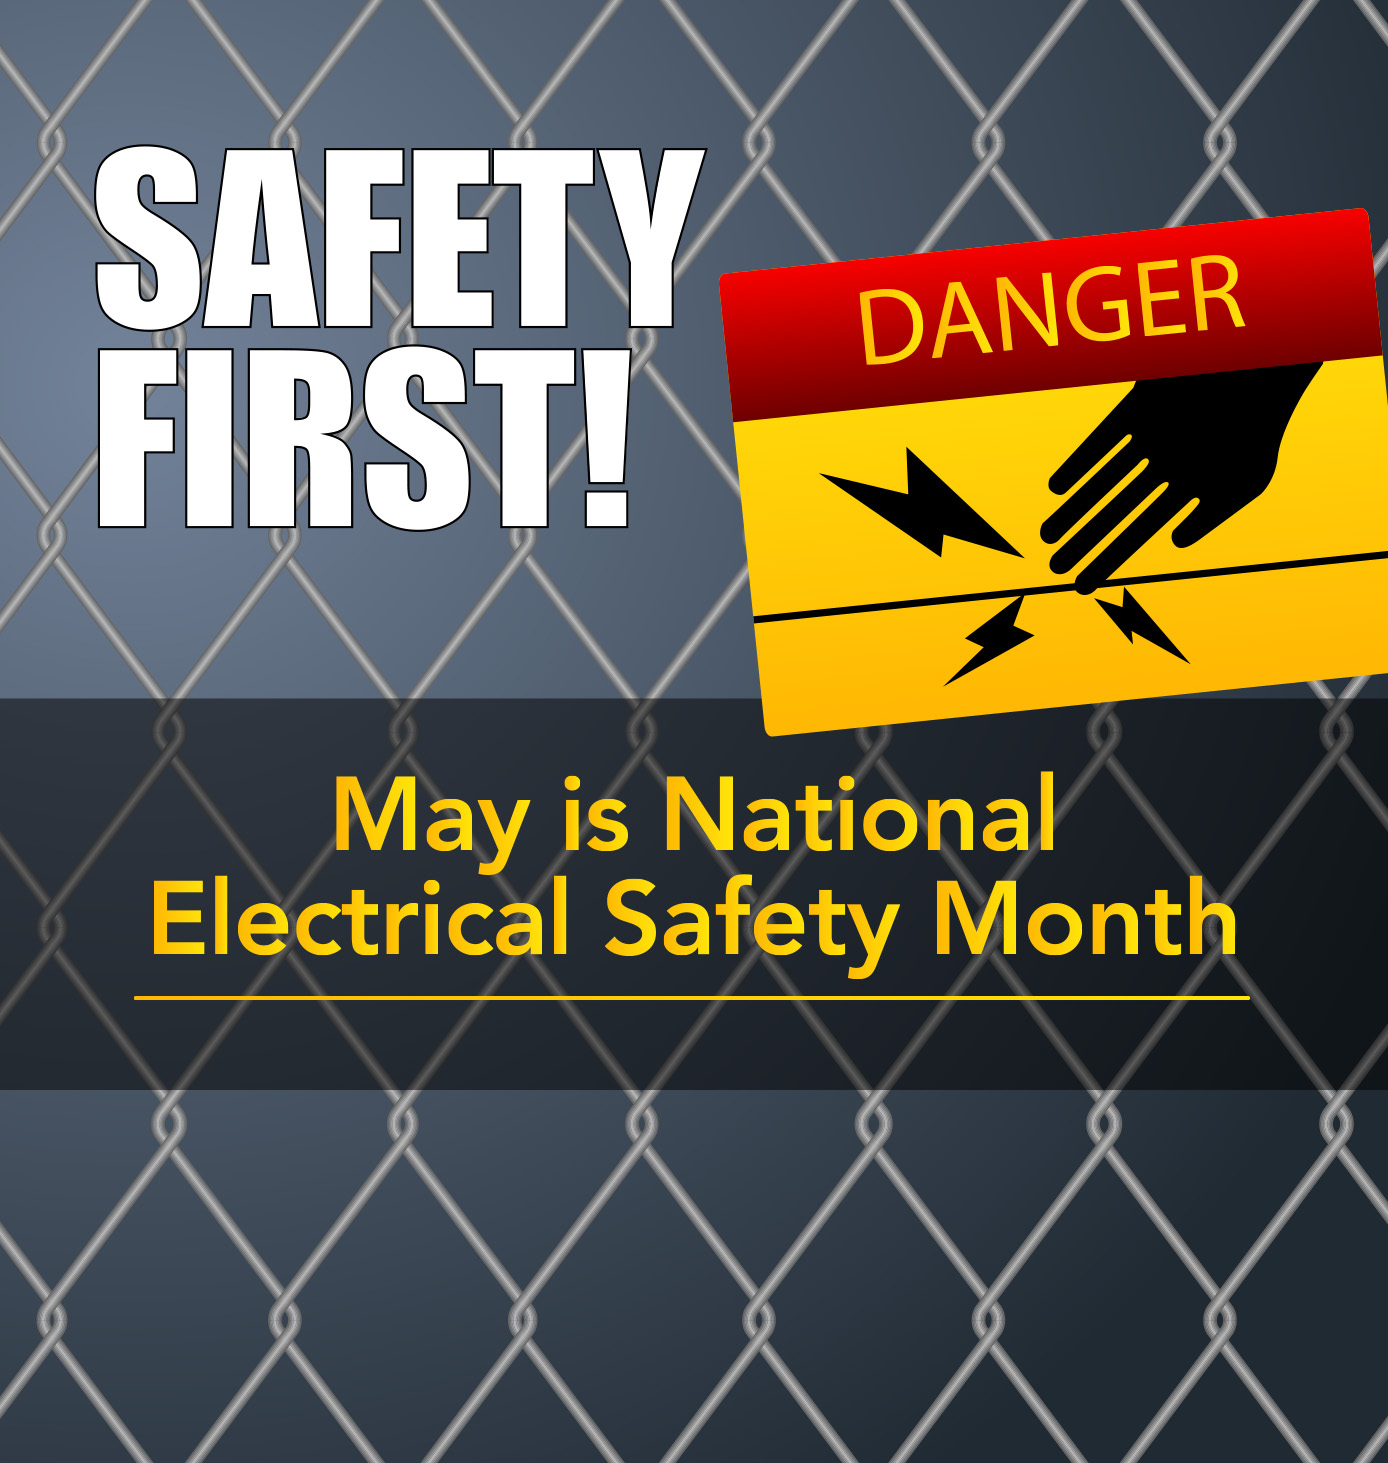 safety first! may is elec safety month